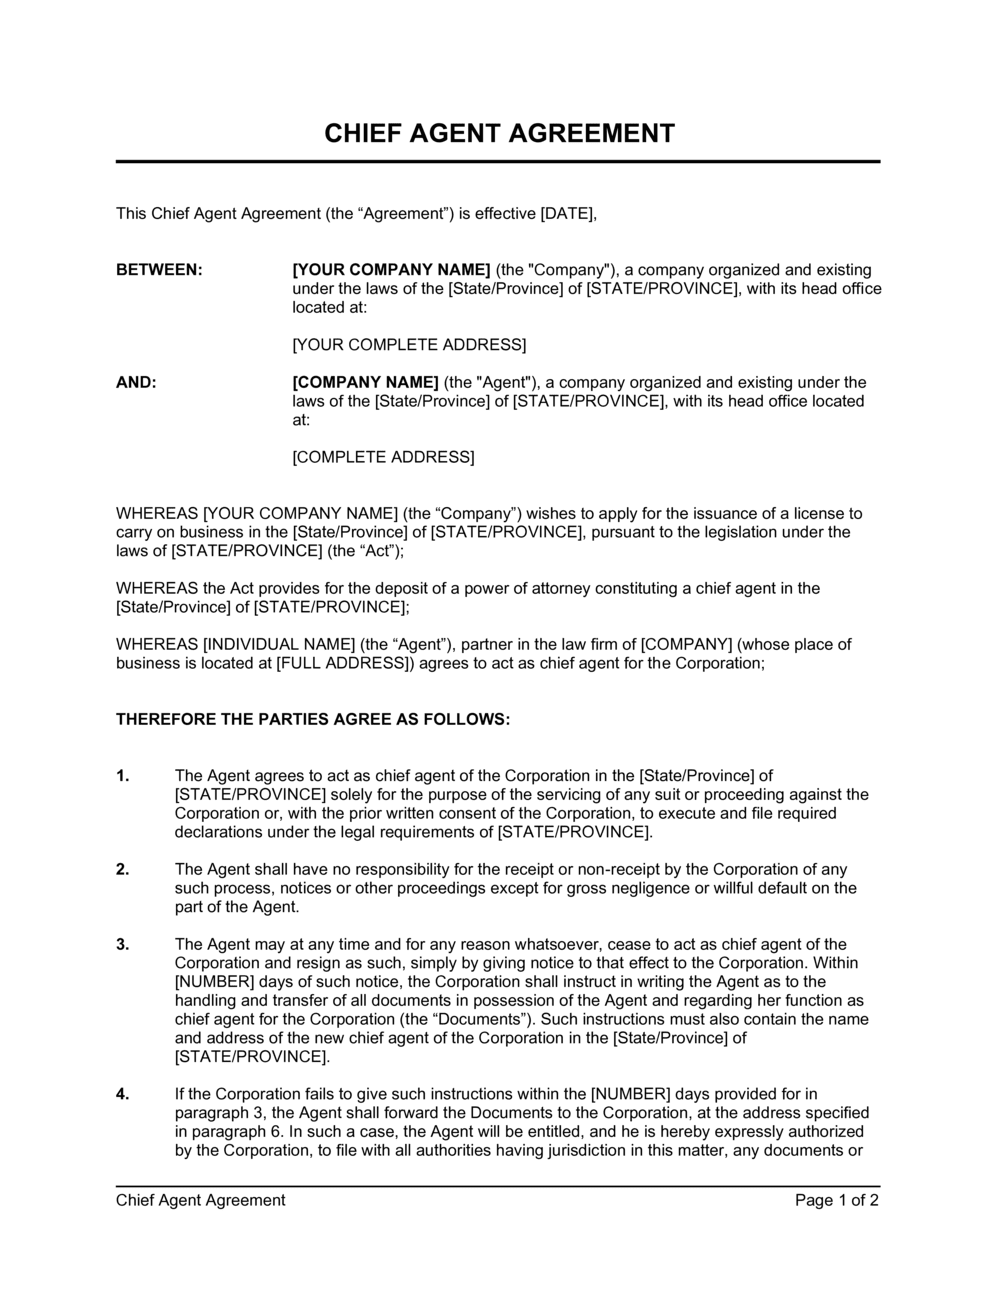 Business-in-a-Box's Chief Agent Agreement Short Form Template